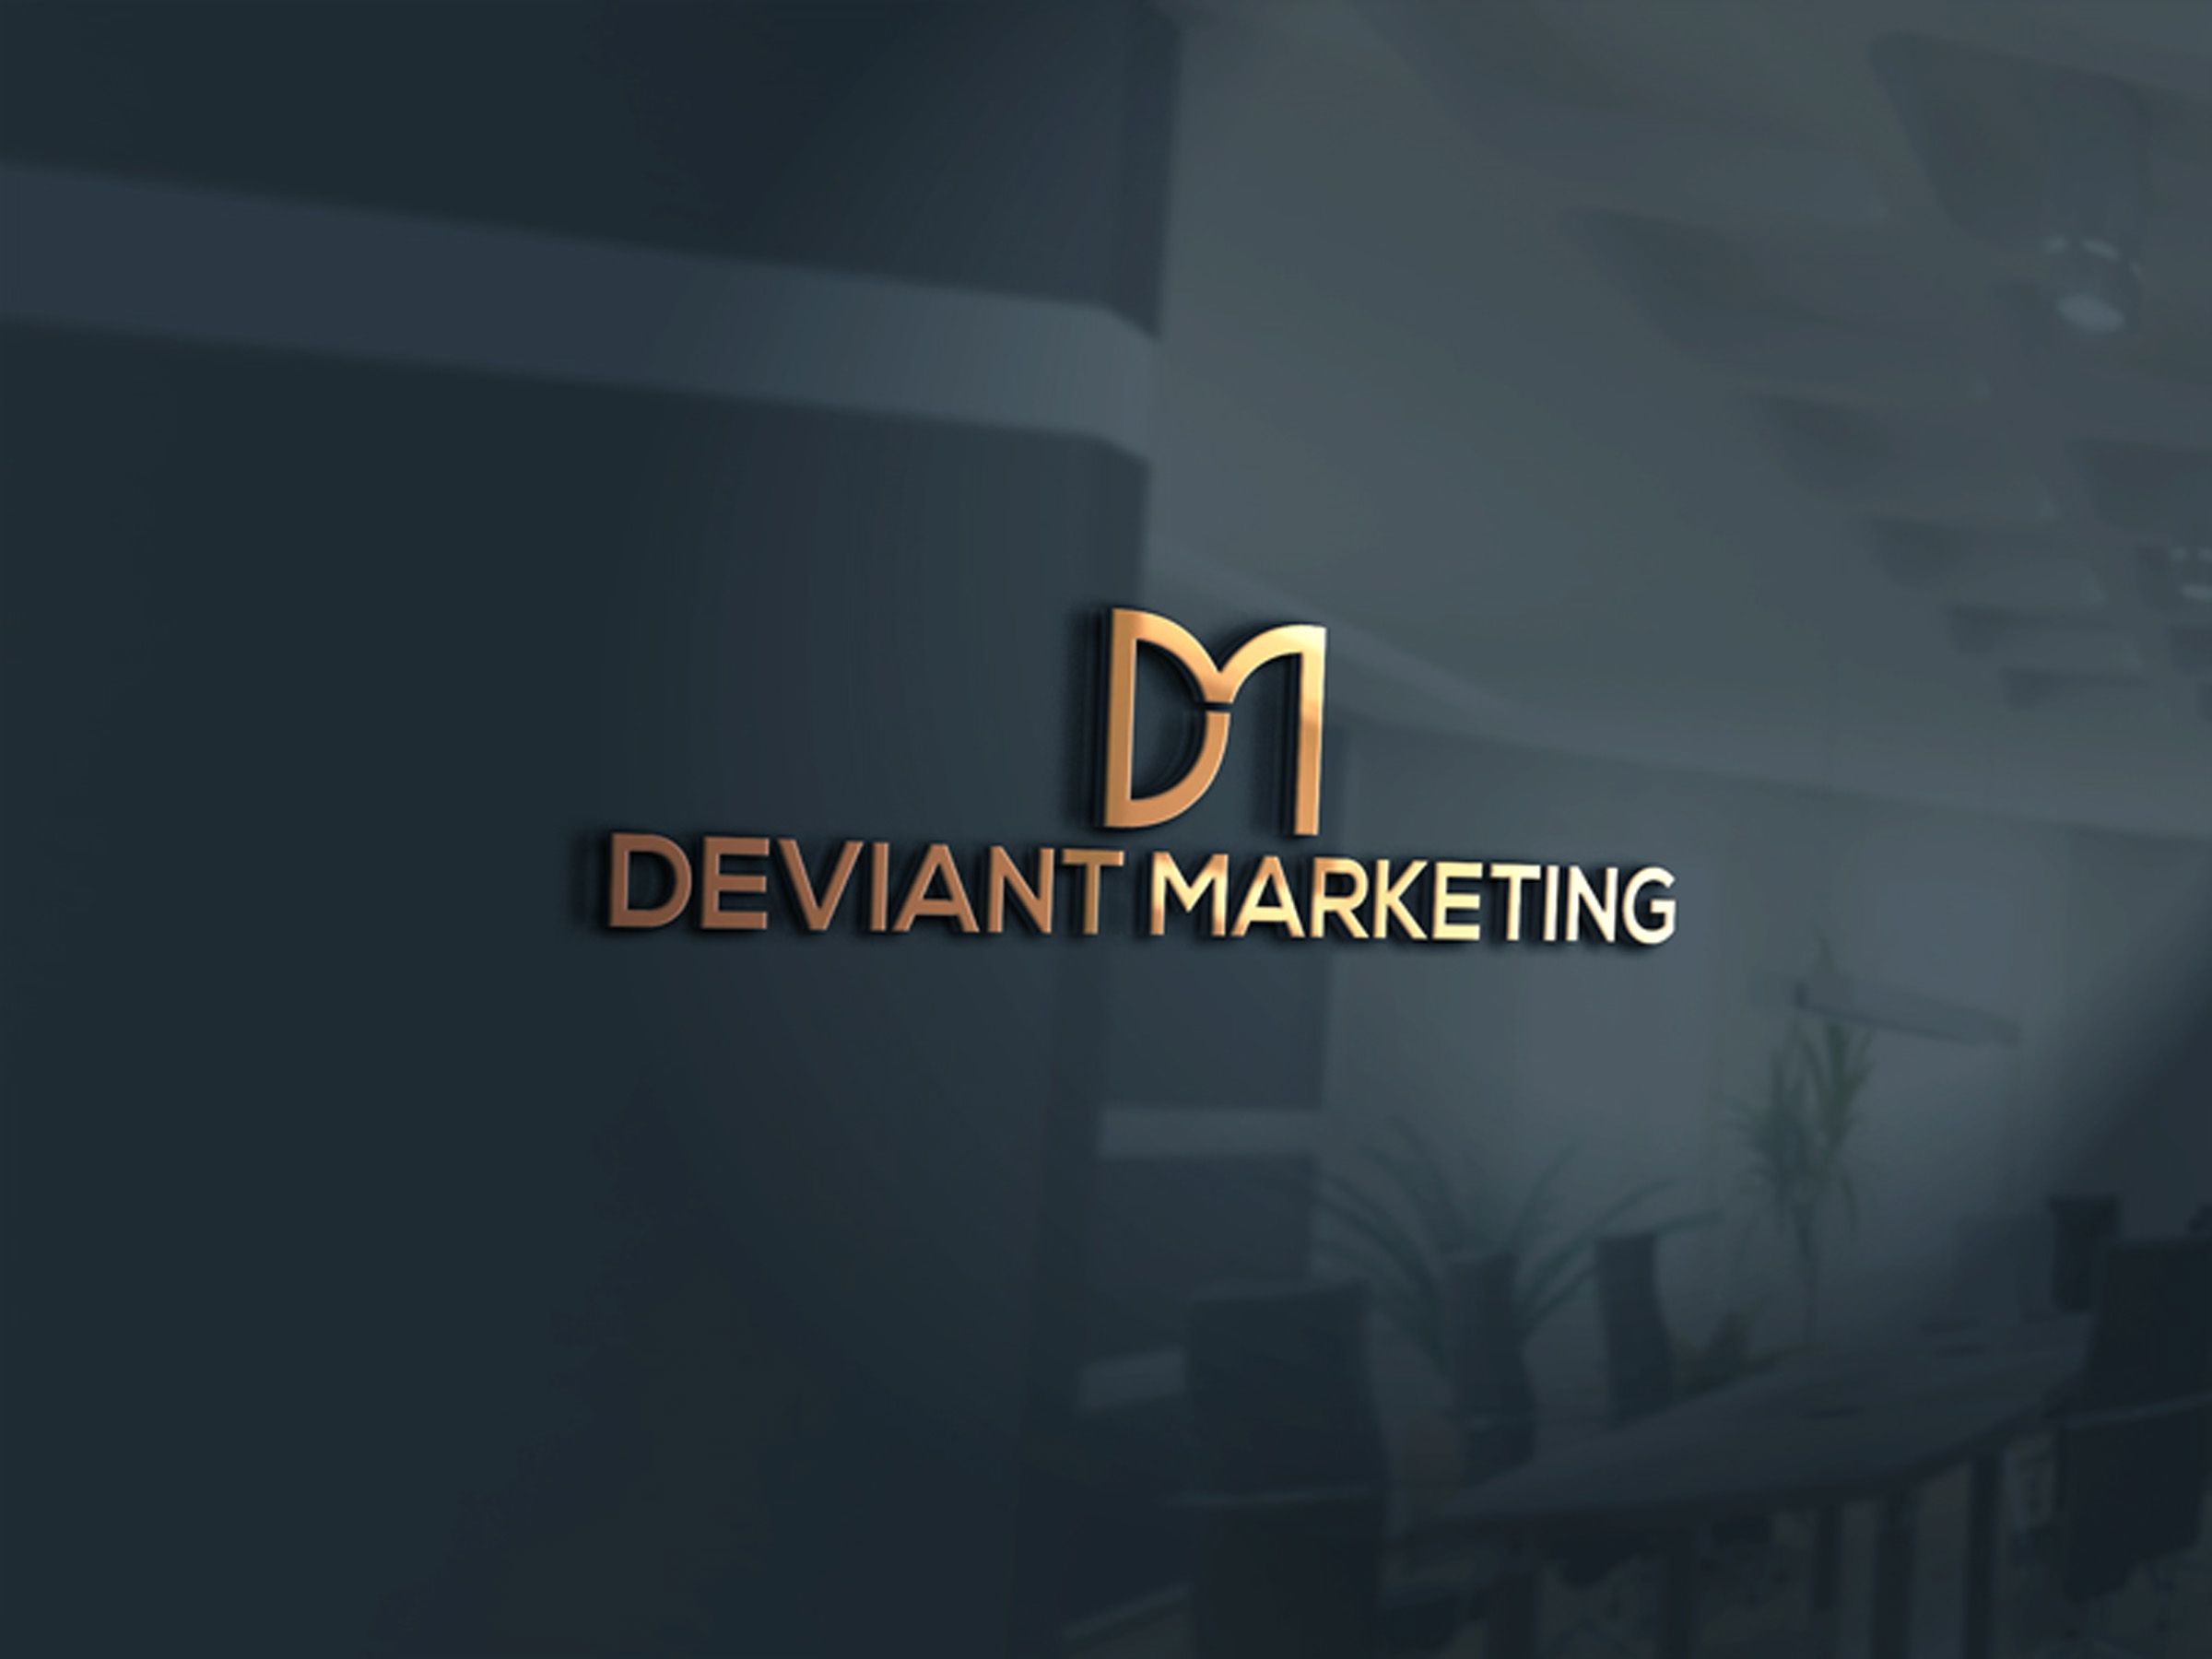 Deviant Marketing 3 3400